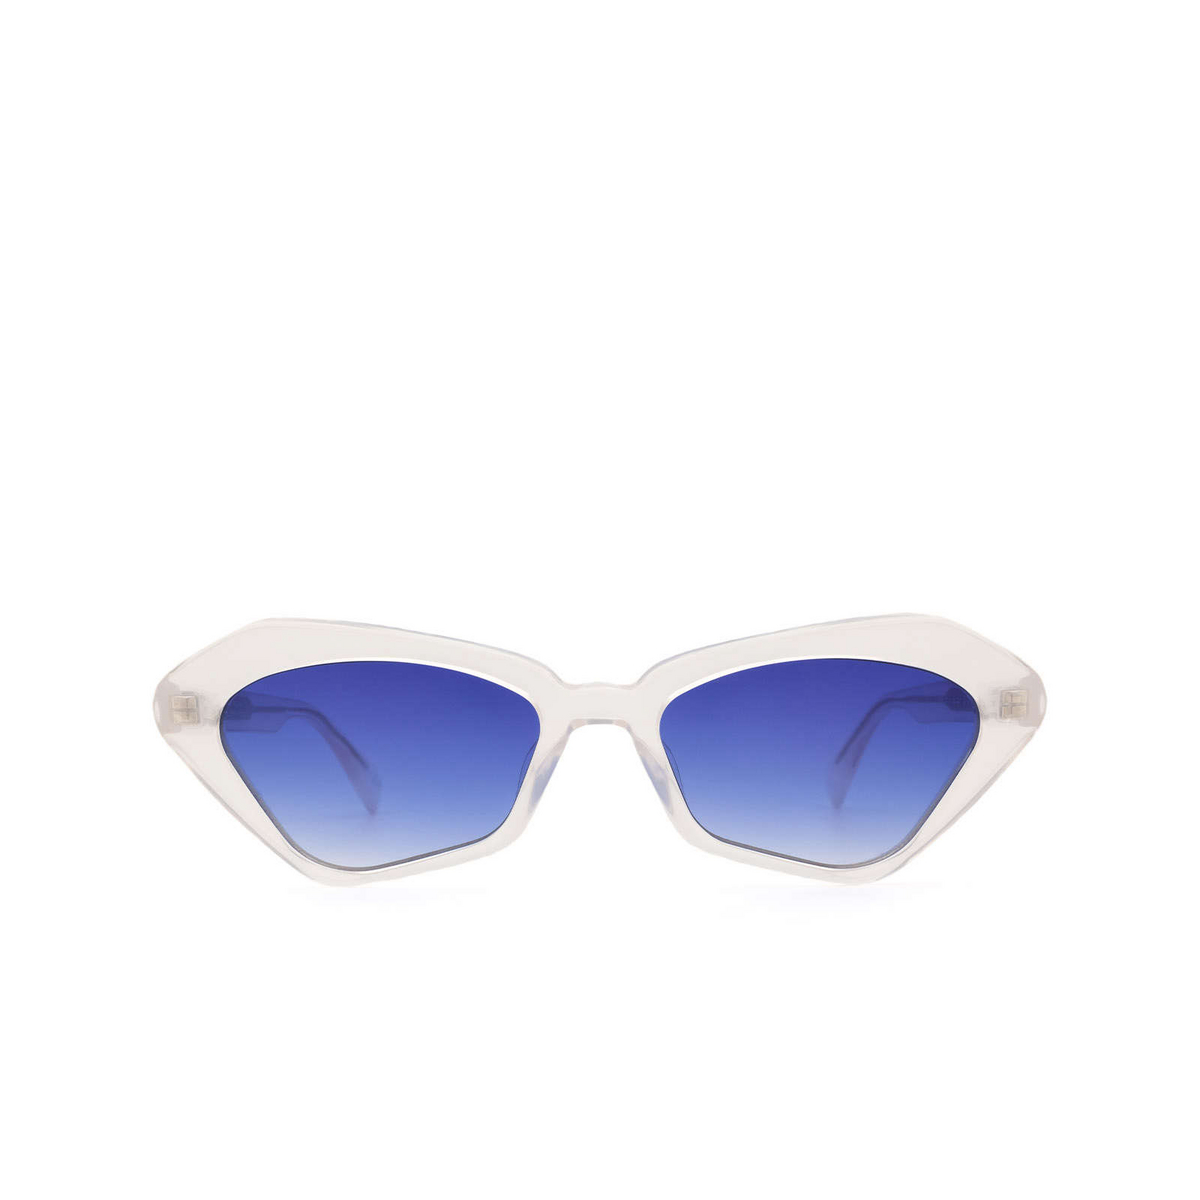 Chimi® Irregular Sunglasses: Space Melted Star color White Moonlight - front view.